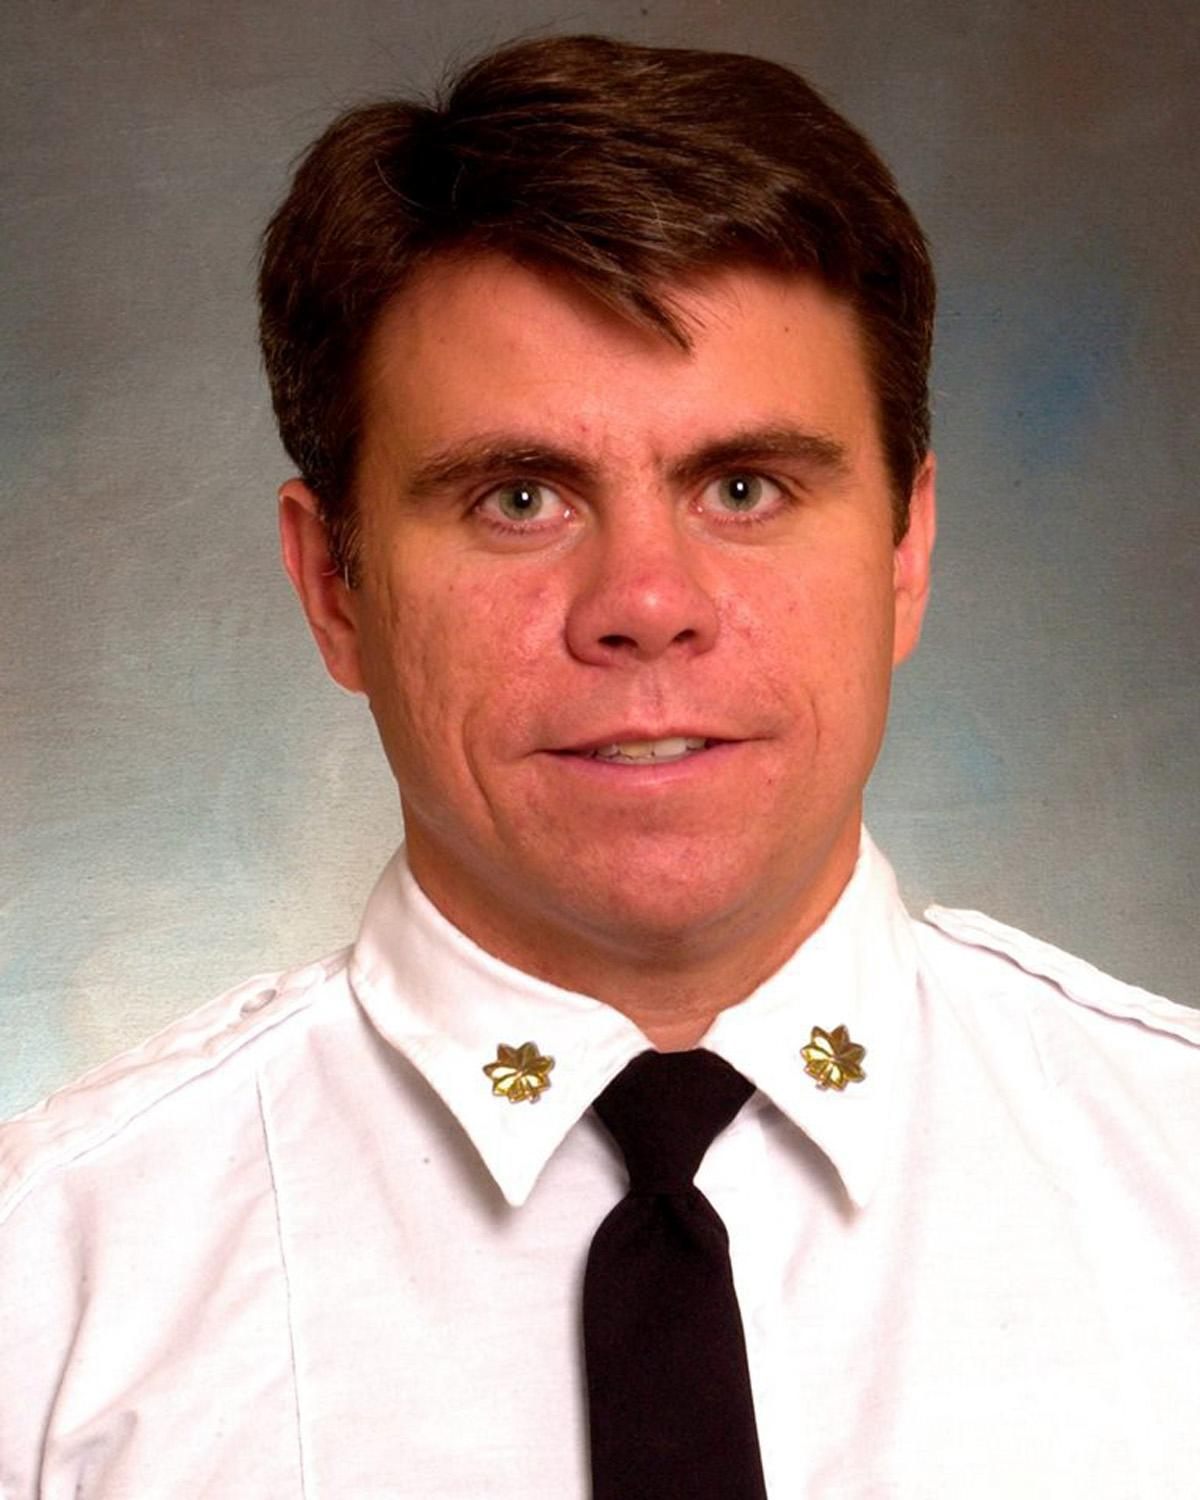 Battalion Chief Michael Fahy